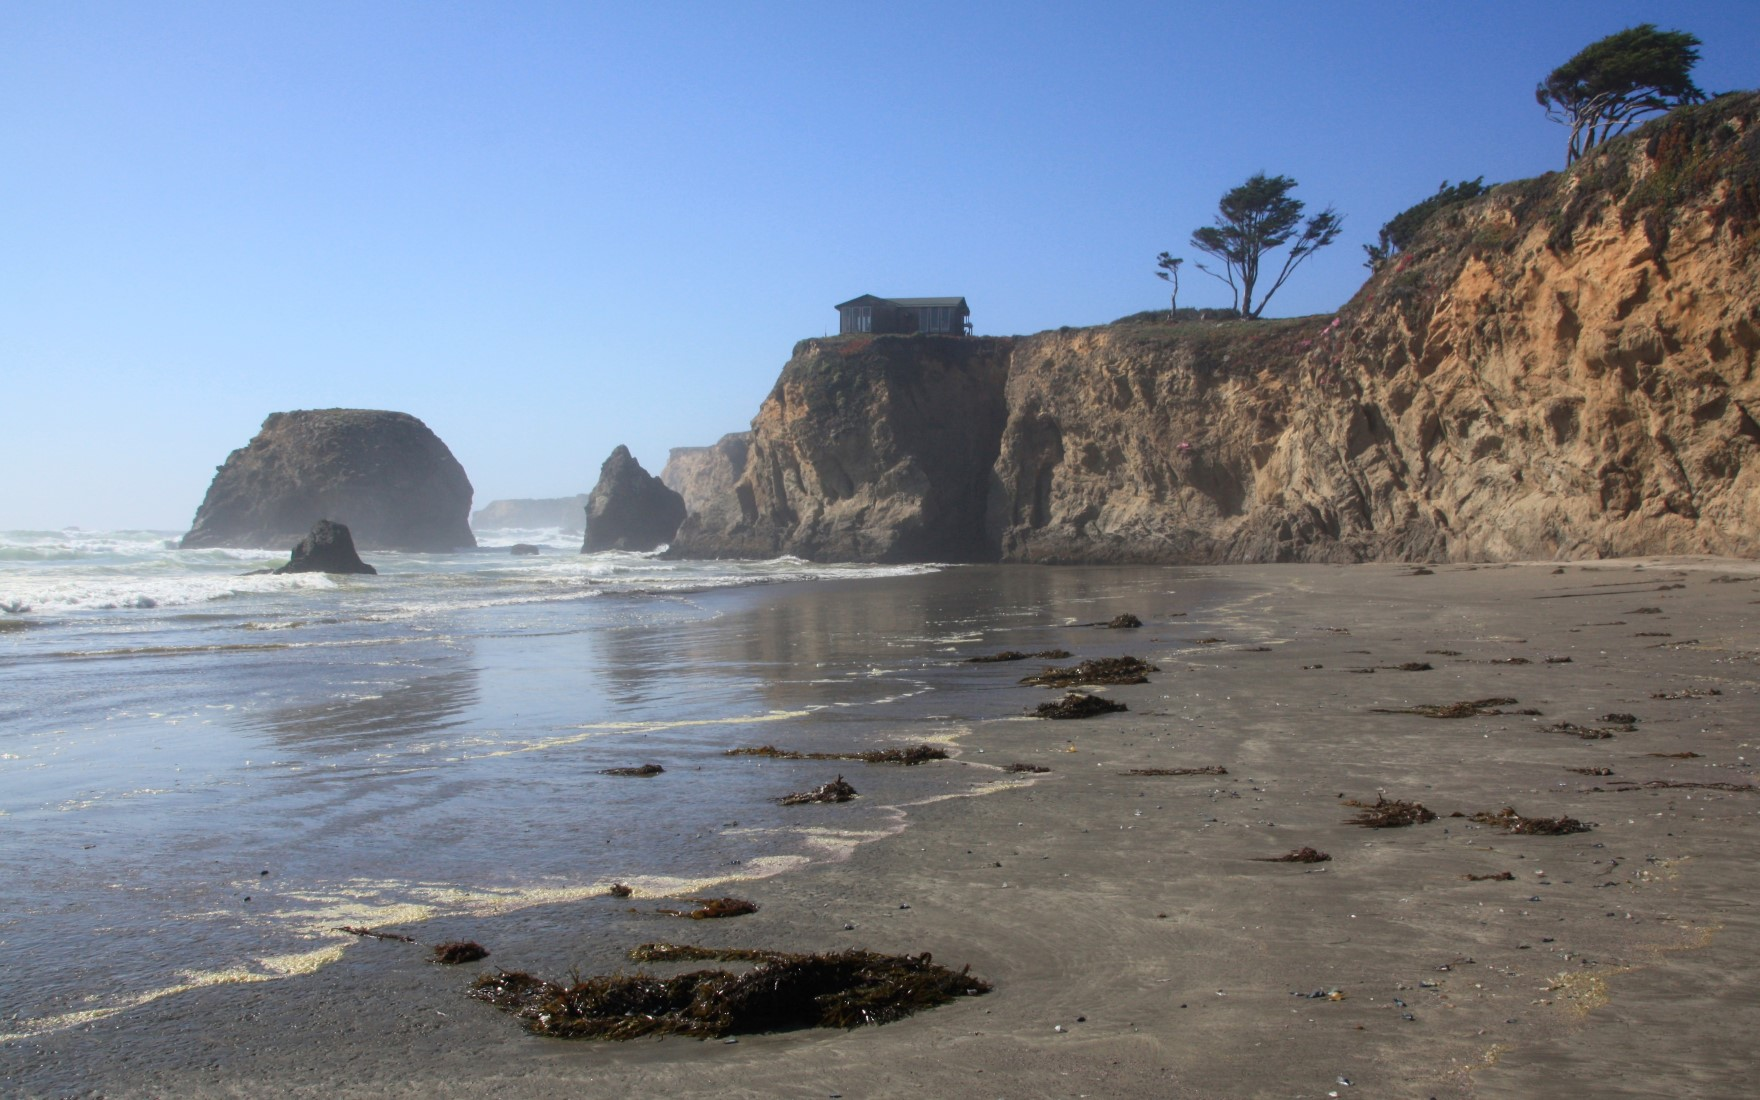 Fort Bragg, California is a nice and quiet place to take an RV vacation.